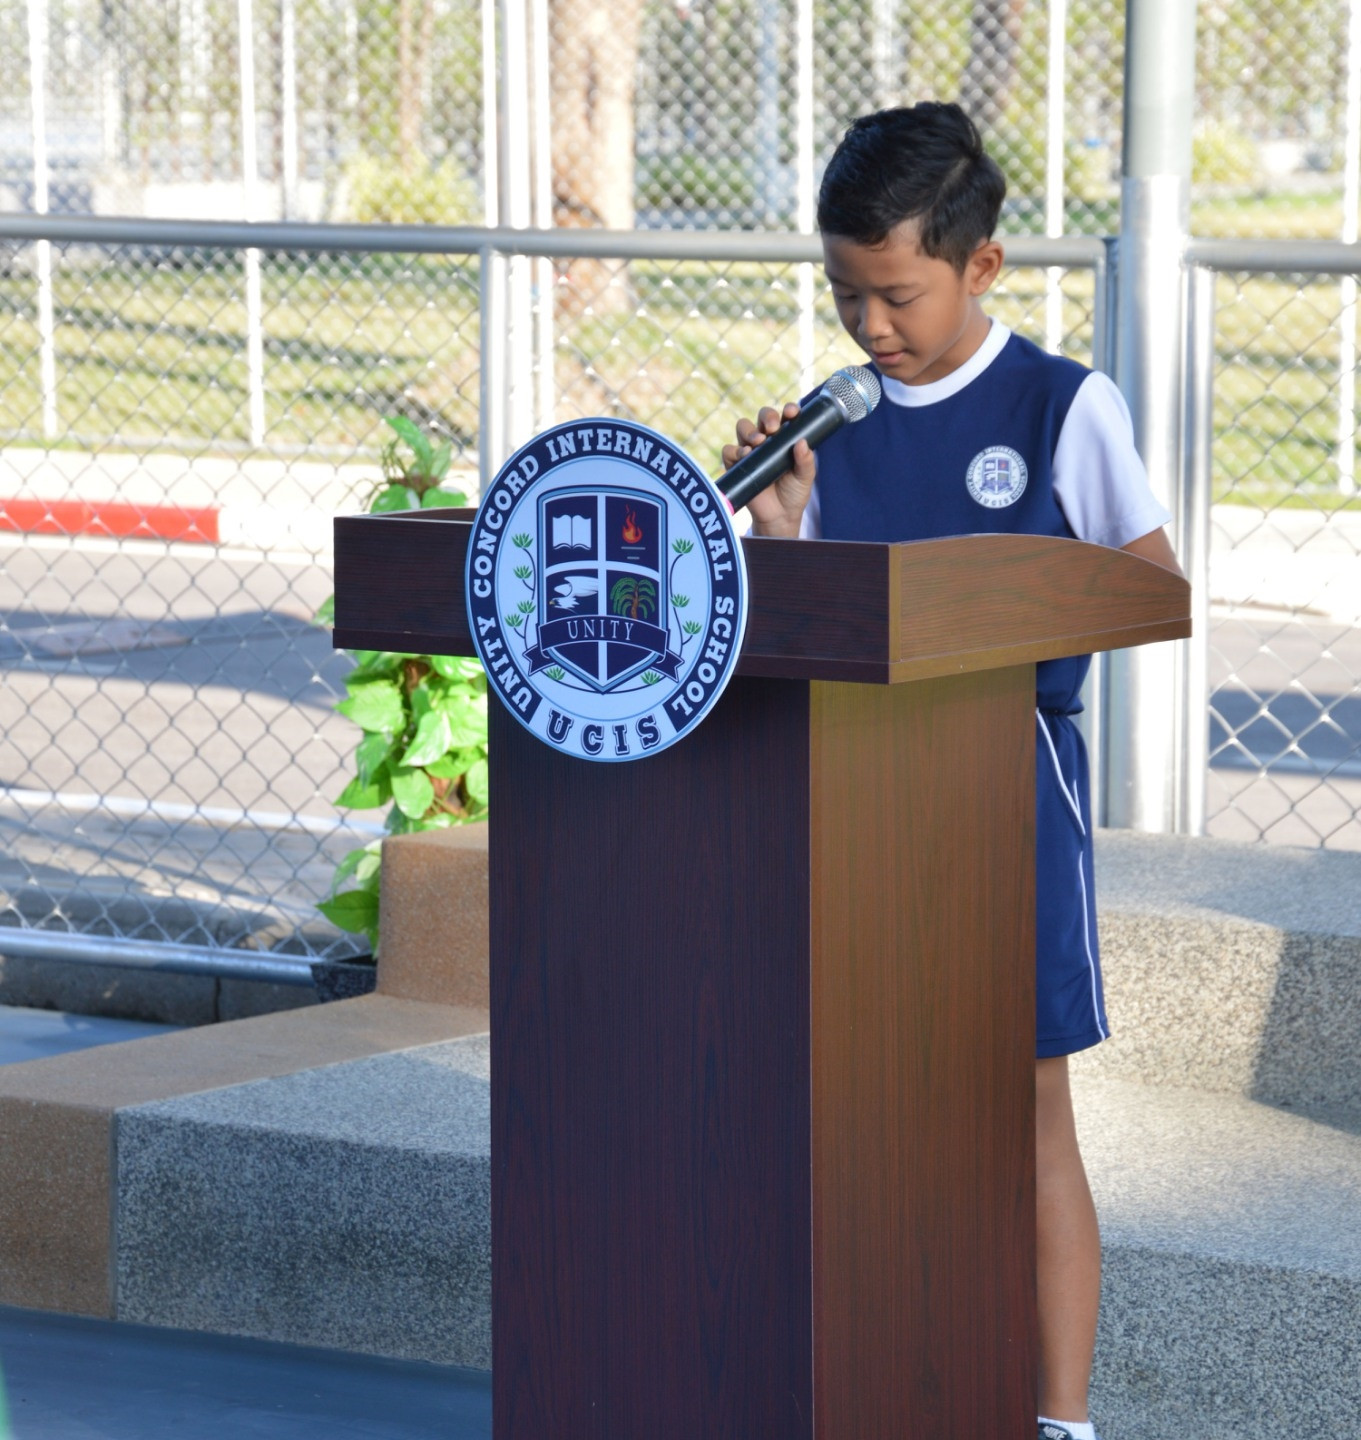 UCIS - Father's Day, Poem Recital